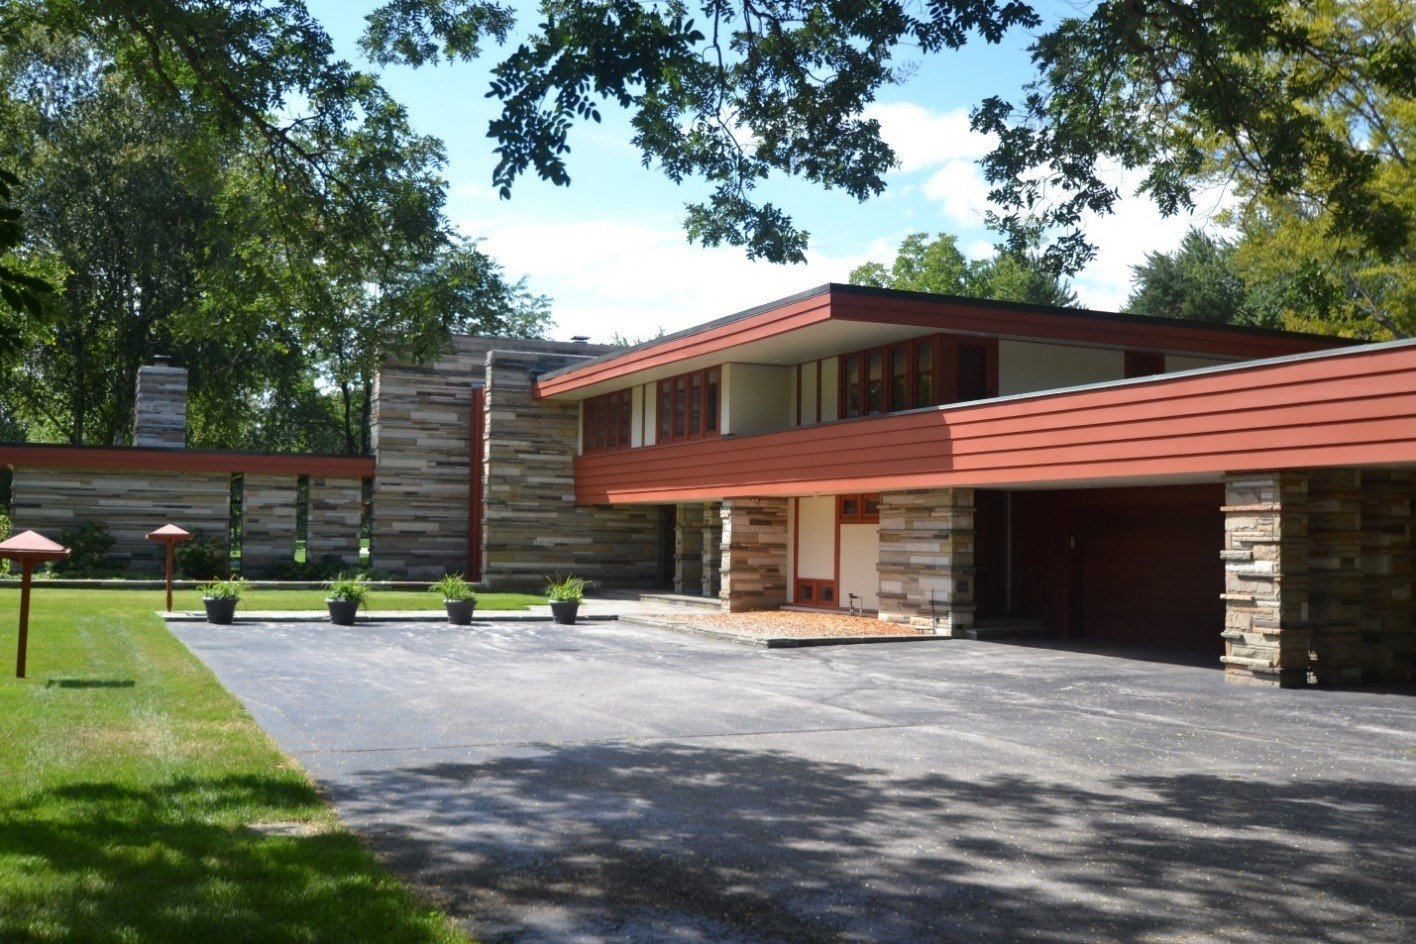 Glenn Beach's 1956 Gilbert Currie House is characteristic of the midcentury modern style with its streamlined, texture-rich exterior.  Photo 2 of 5 in Defining an Architectural Canon From the Ground Up